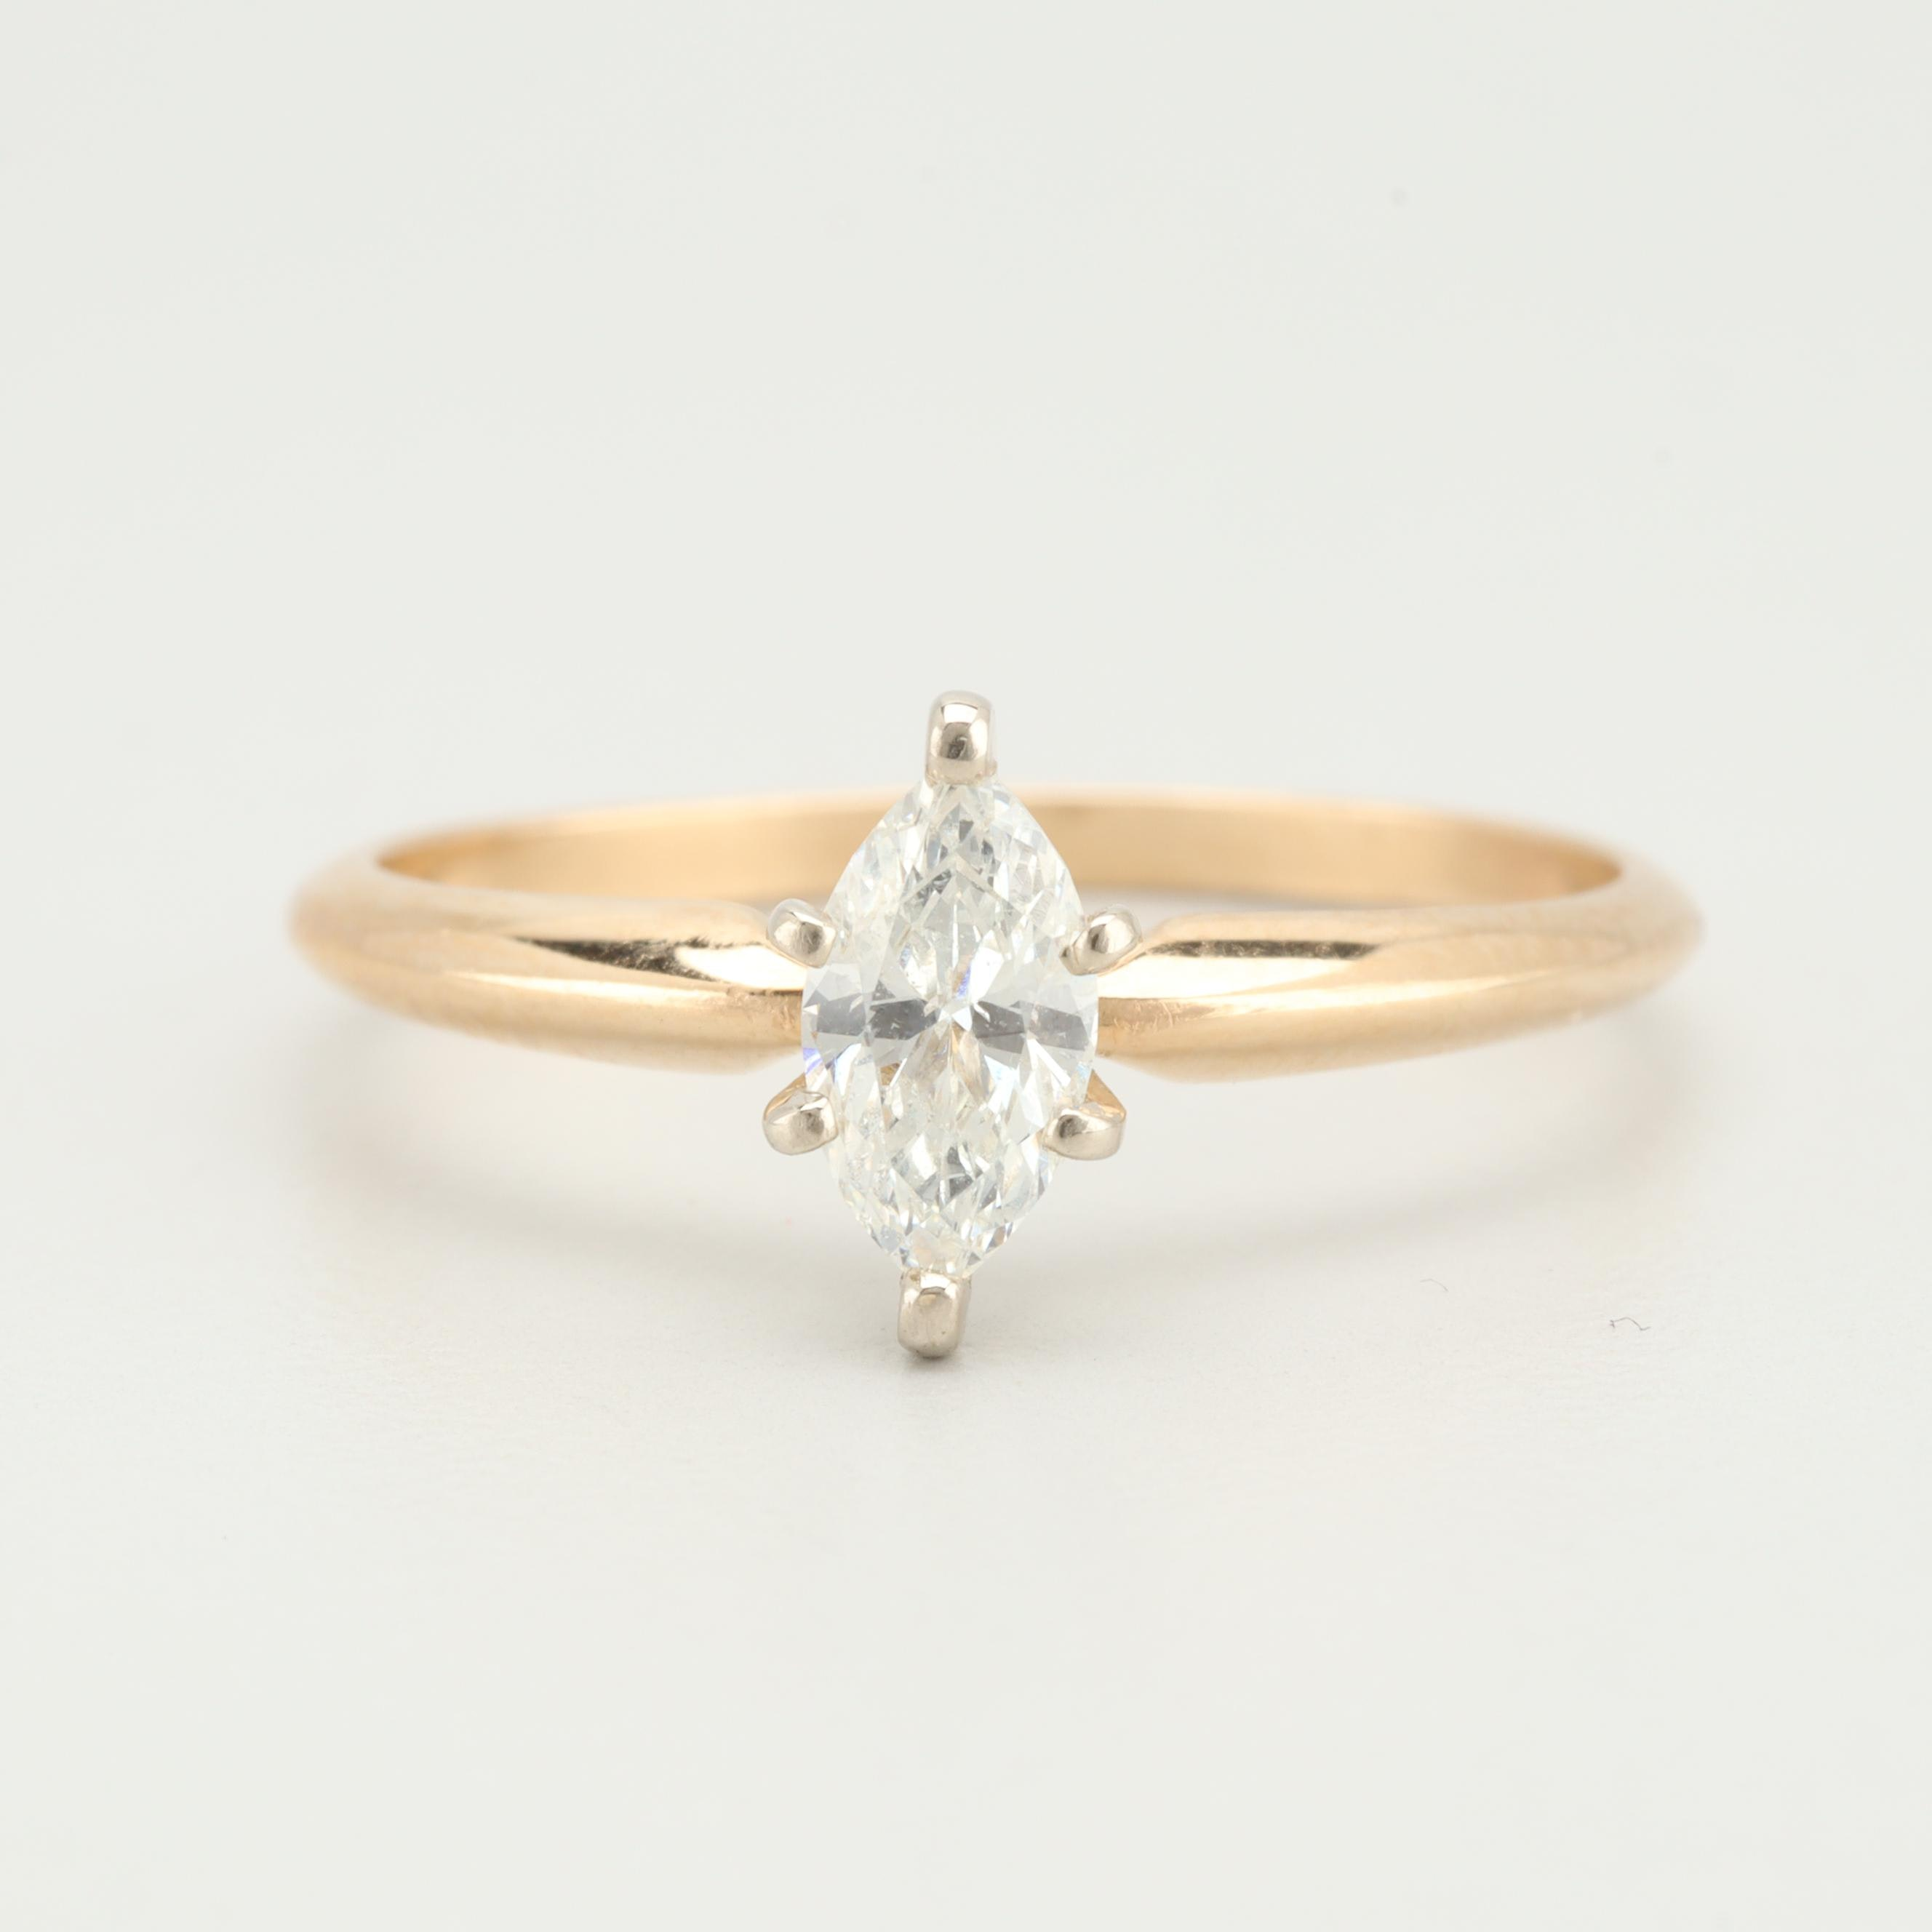 14K Yellow Gold Diamond Solitaire Ring